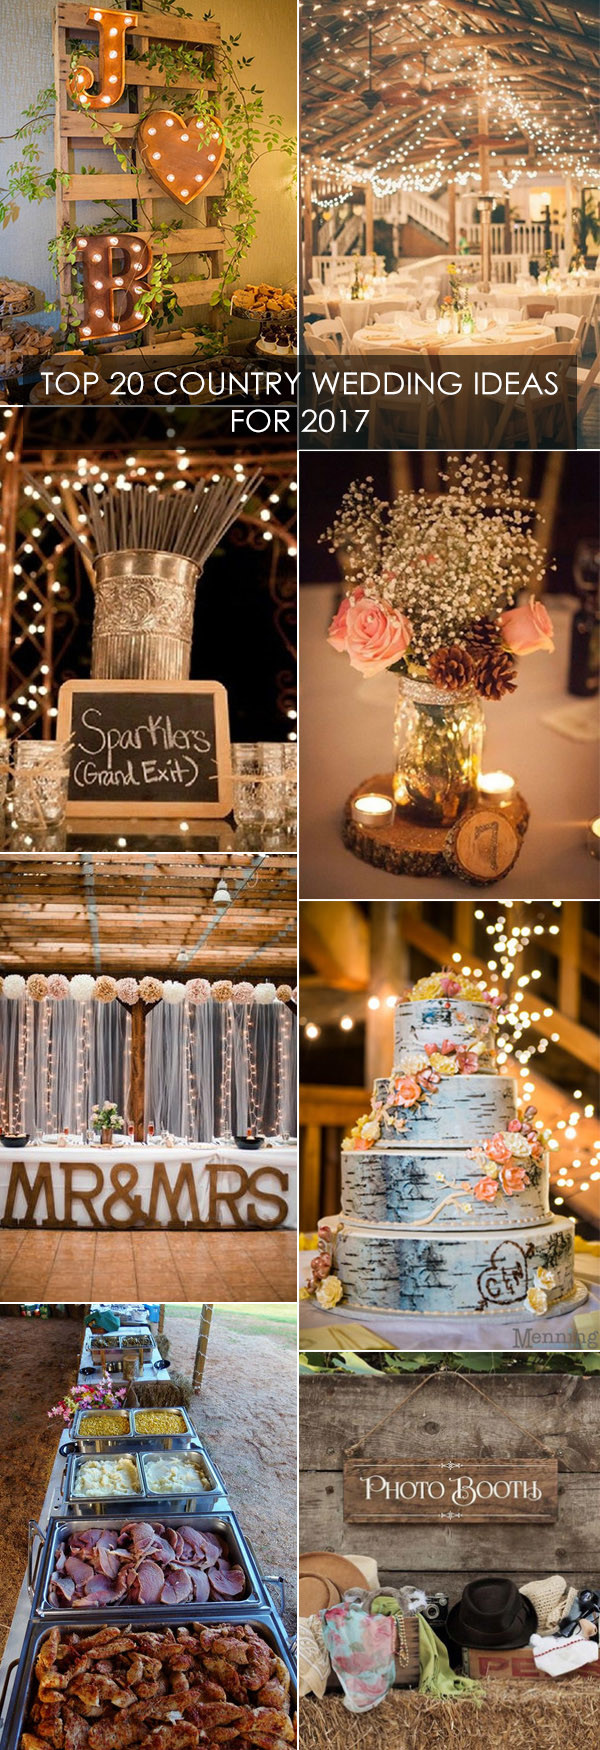 country wedding ideas for 2017 trends